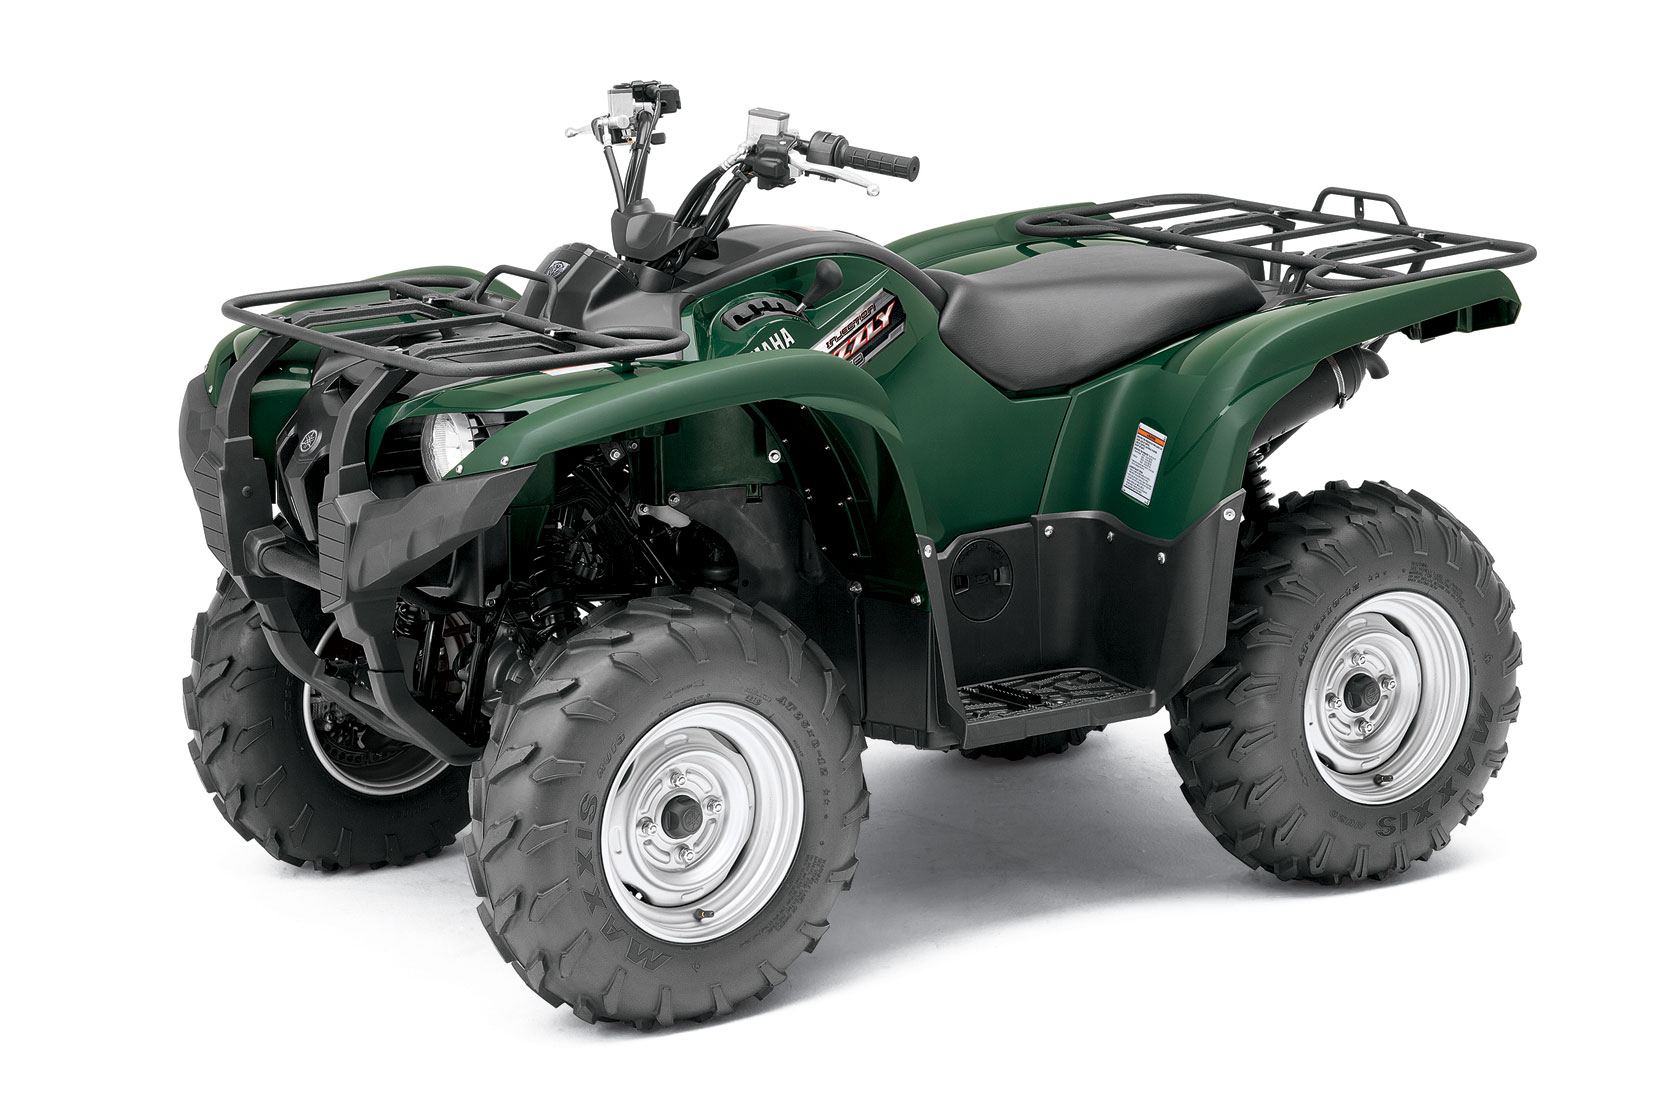 2012 yamaha grizzly 550 review